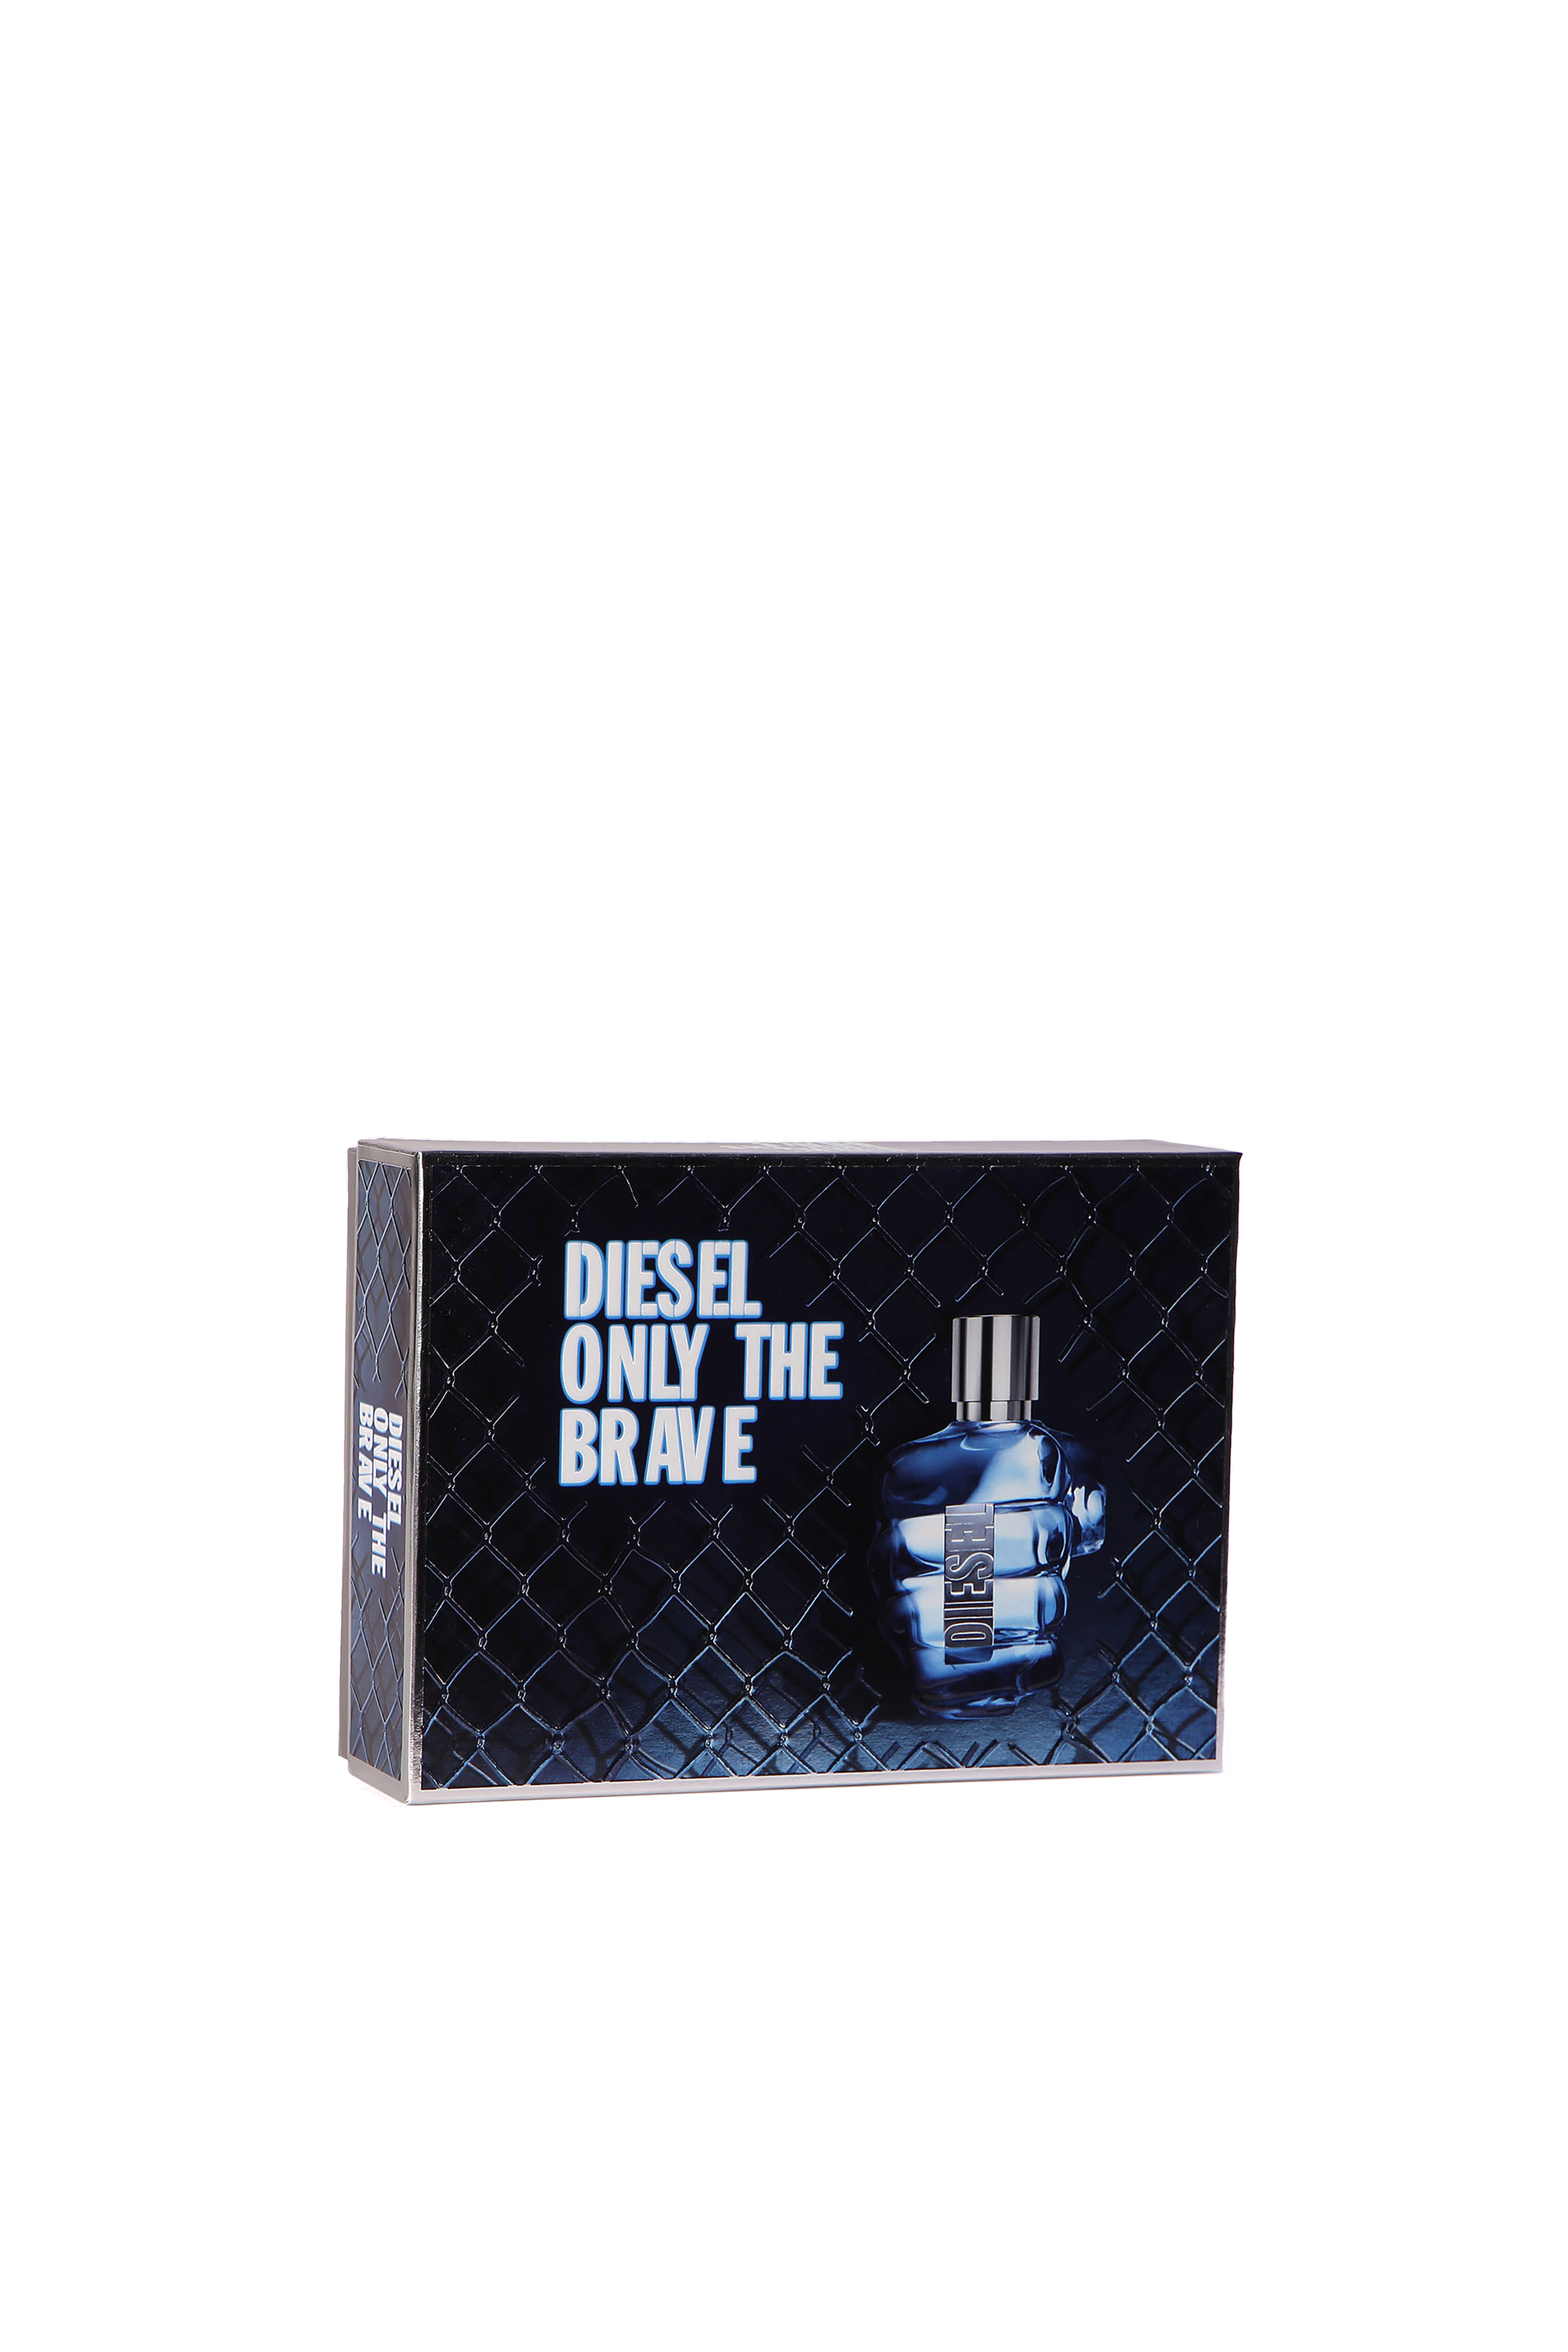 Diesel - ONLY THE BRAVE 50ML GIFT SET,  - Only The Brave - Image 1